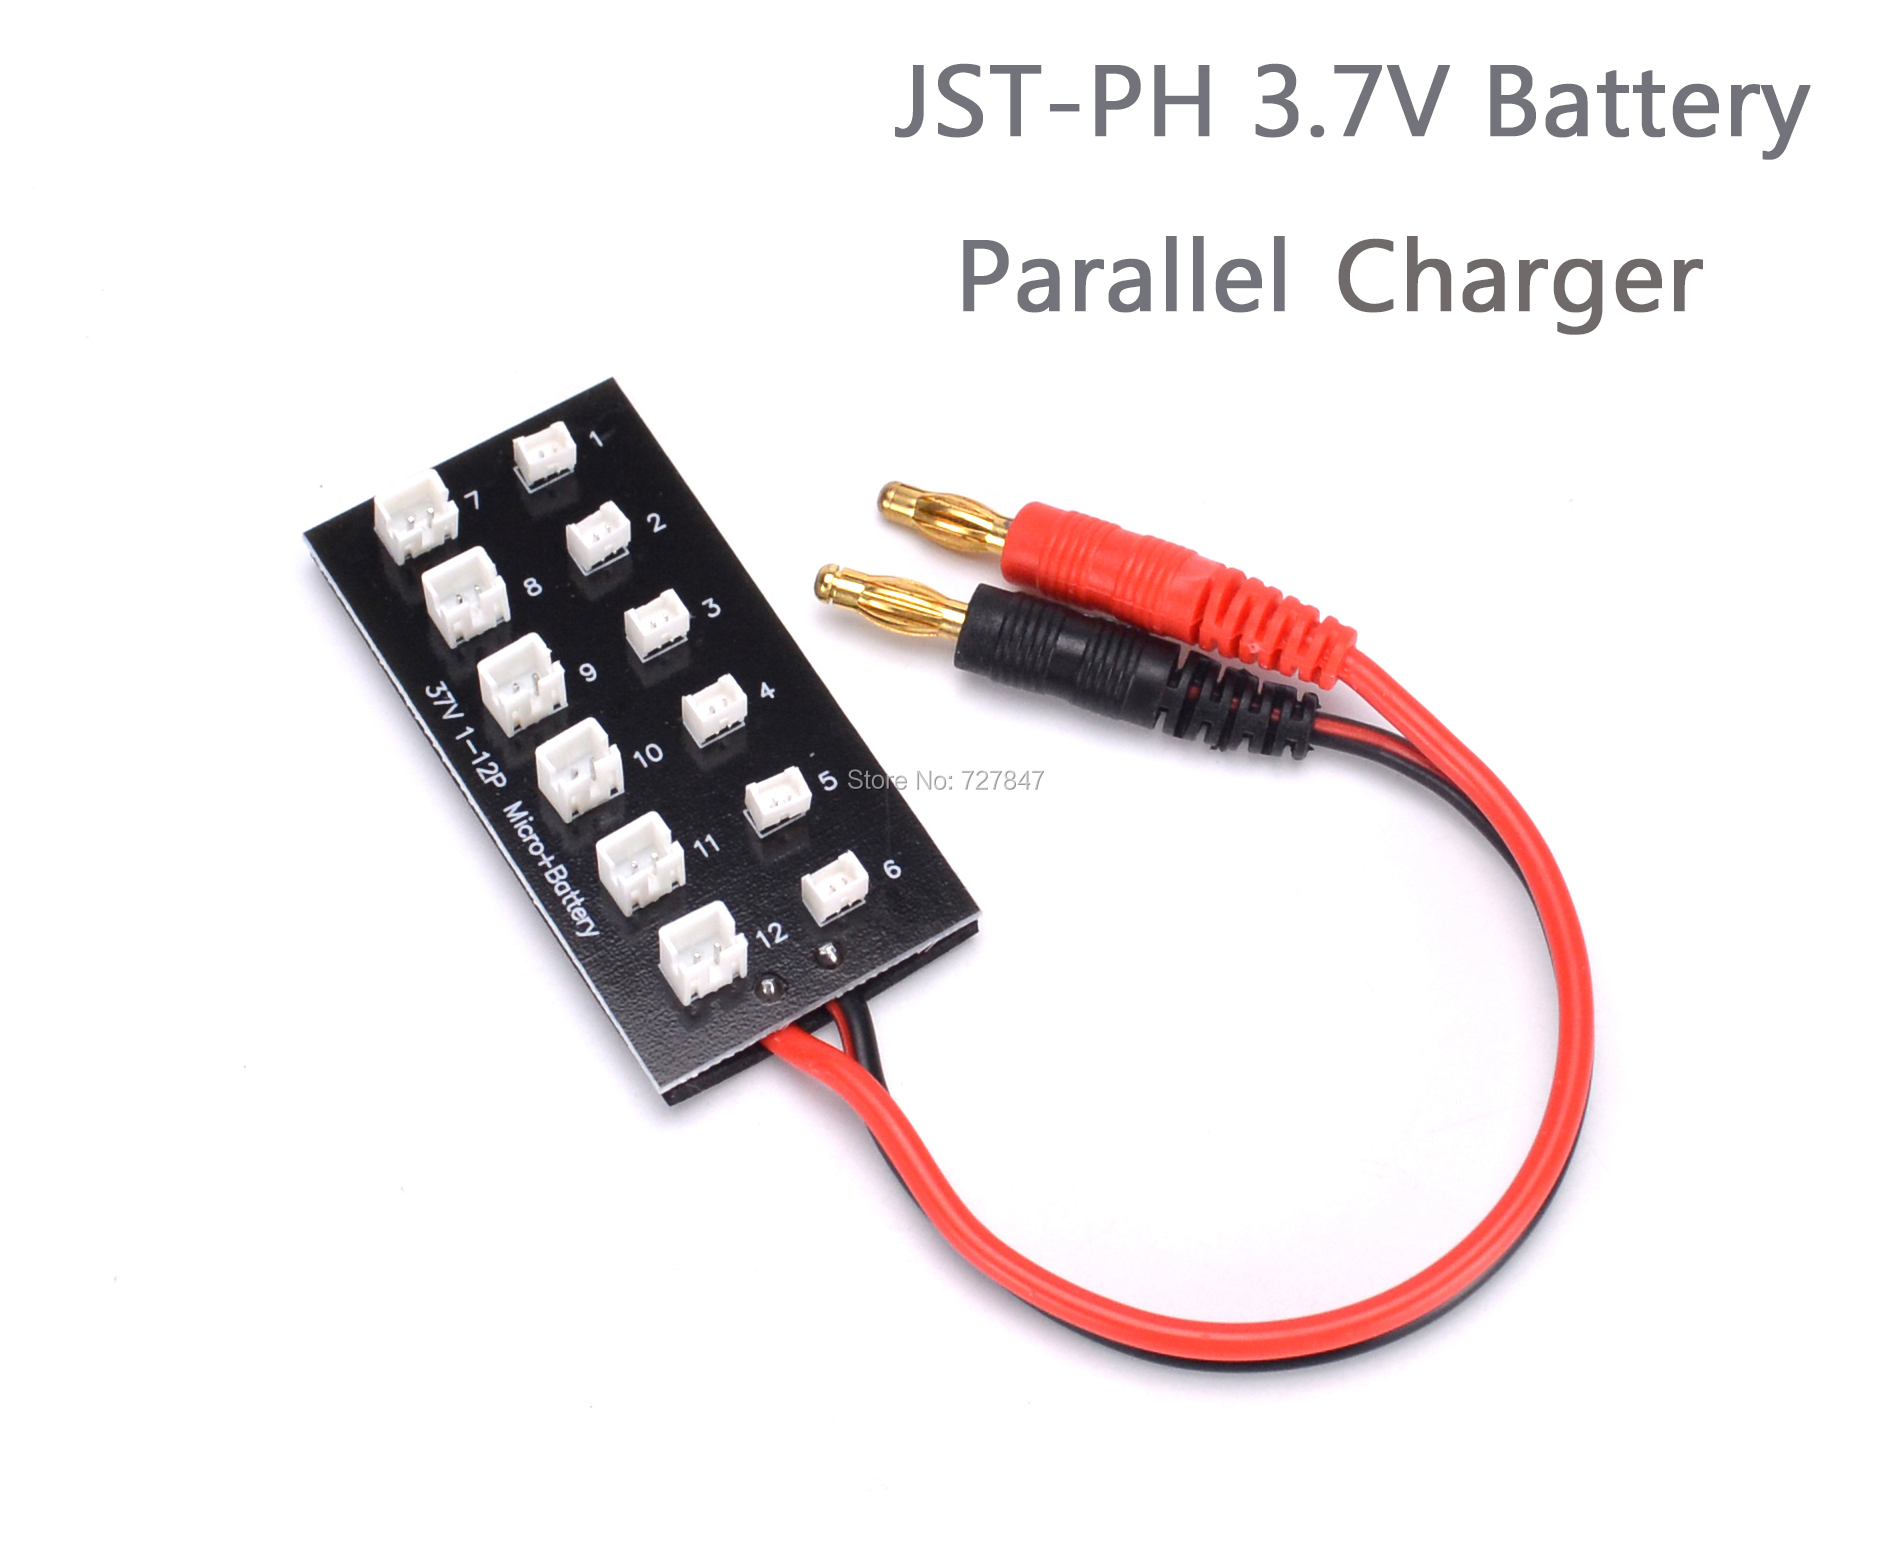 NEW JST Plug <font><b>1S</b></font> <font><b>Lipo</b></font> <font><b>Battery</b></font> Parallel Charging Board for Balance Charger Drone Helicopter <font><b>Battery</b></font> RC Models Parts image